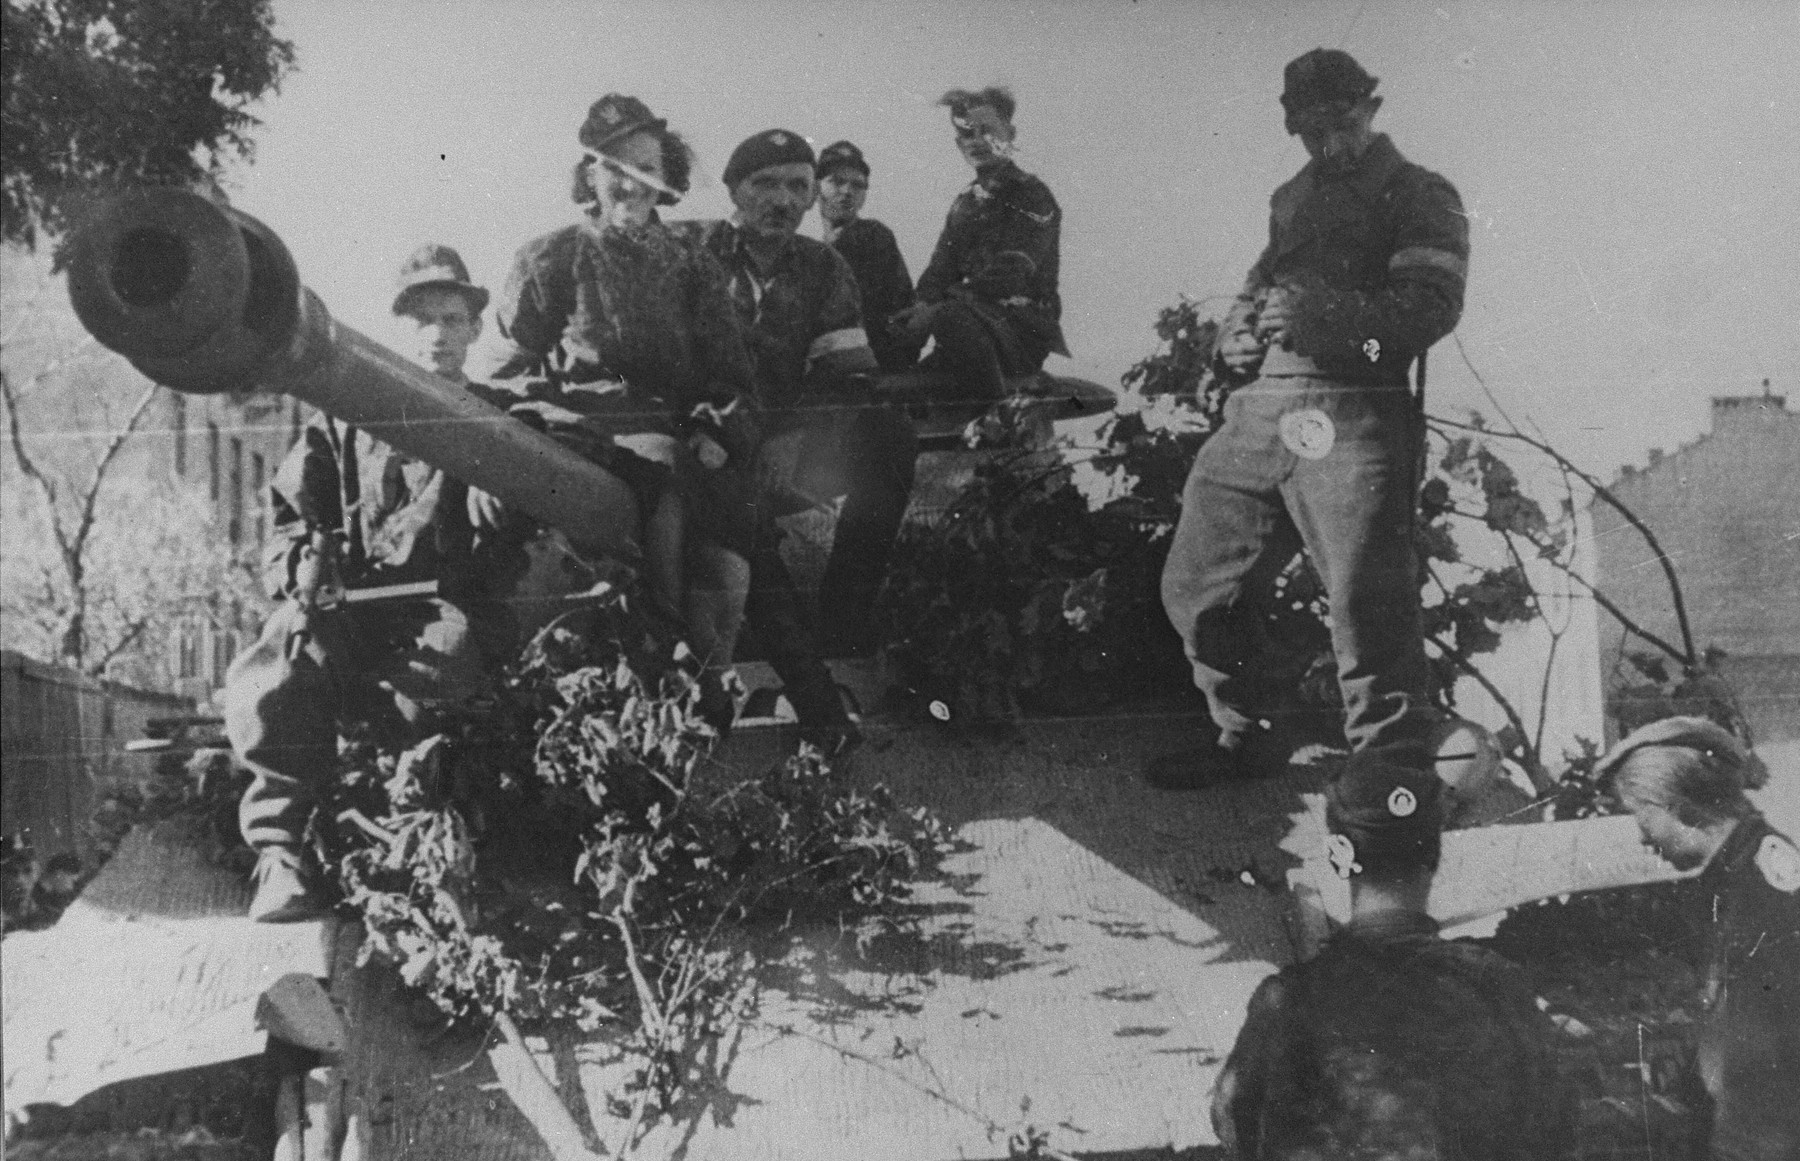 Members of the Zoska battalion of the Armia Krajowa stand atop a German tank captured during the 1944 Warsaw Uprising.    The tank was used by the battalion during its capture of the Gesiowka concentration camp.